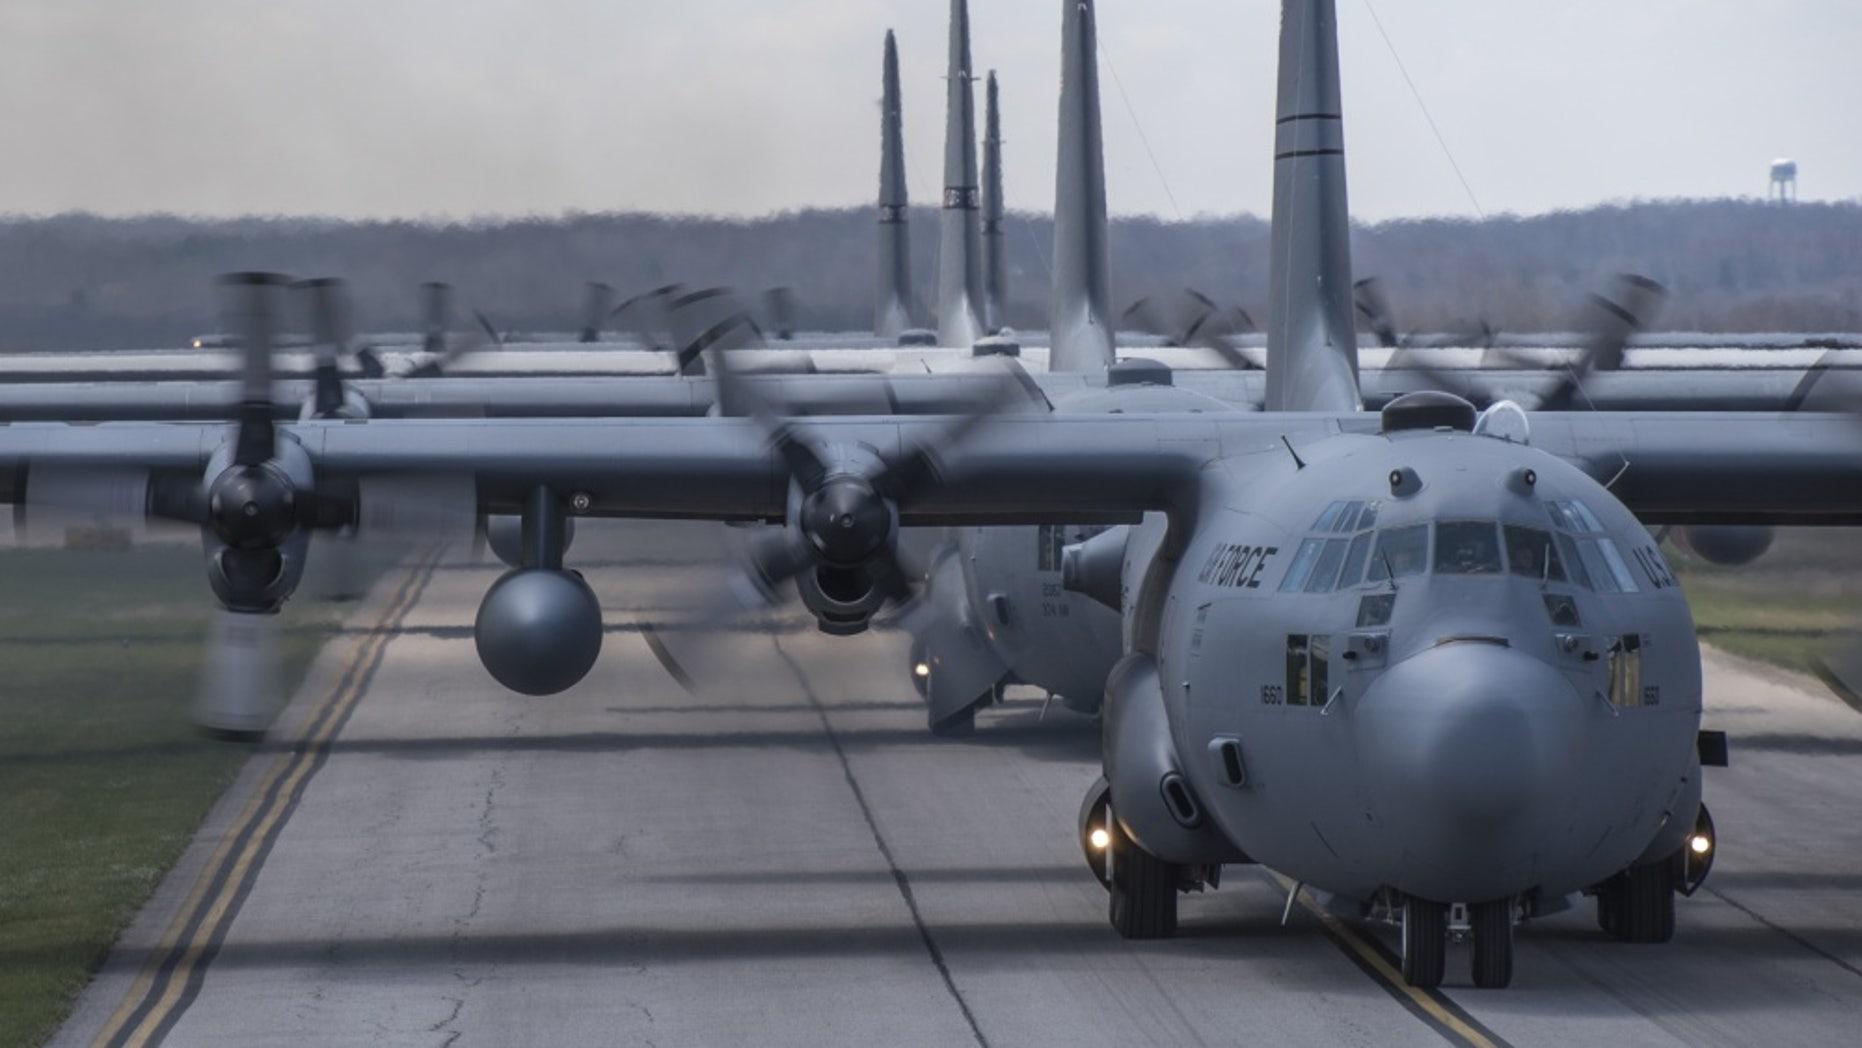 File photo - The 179th Airlift Wing conducts a five ship formation flight using five of their eight C-130H Hercules to conduct coordinated airdrops, April 26, 2018. As the unit's first five ship formation since the conversion back to the C-130H, the flight allowed members of maintenance, aerial port and operations groups to work together increasing overall readiness of deployable assets. (U.S. Air National Guard photo by Tech. Sgt. Joe Harwood/RELEASED)